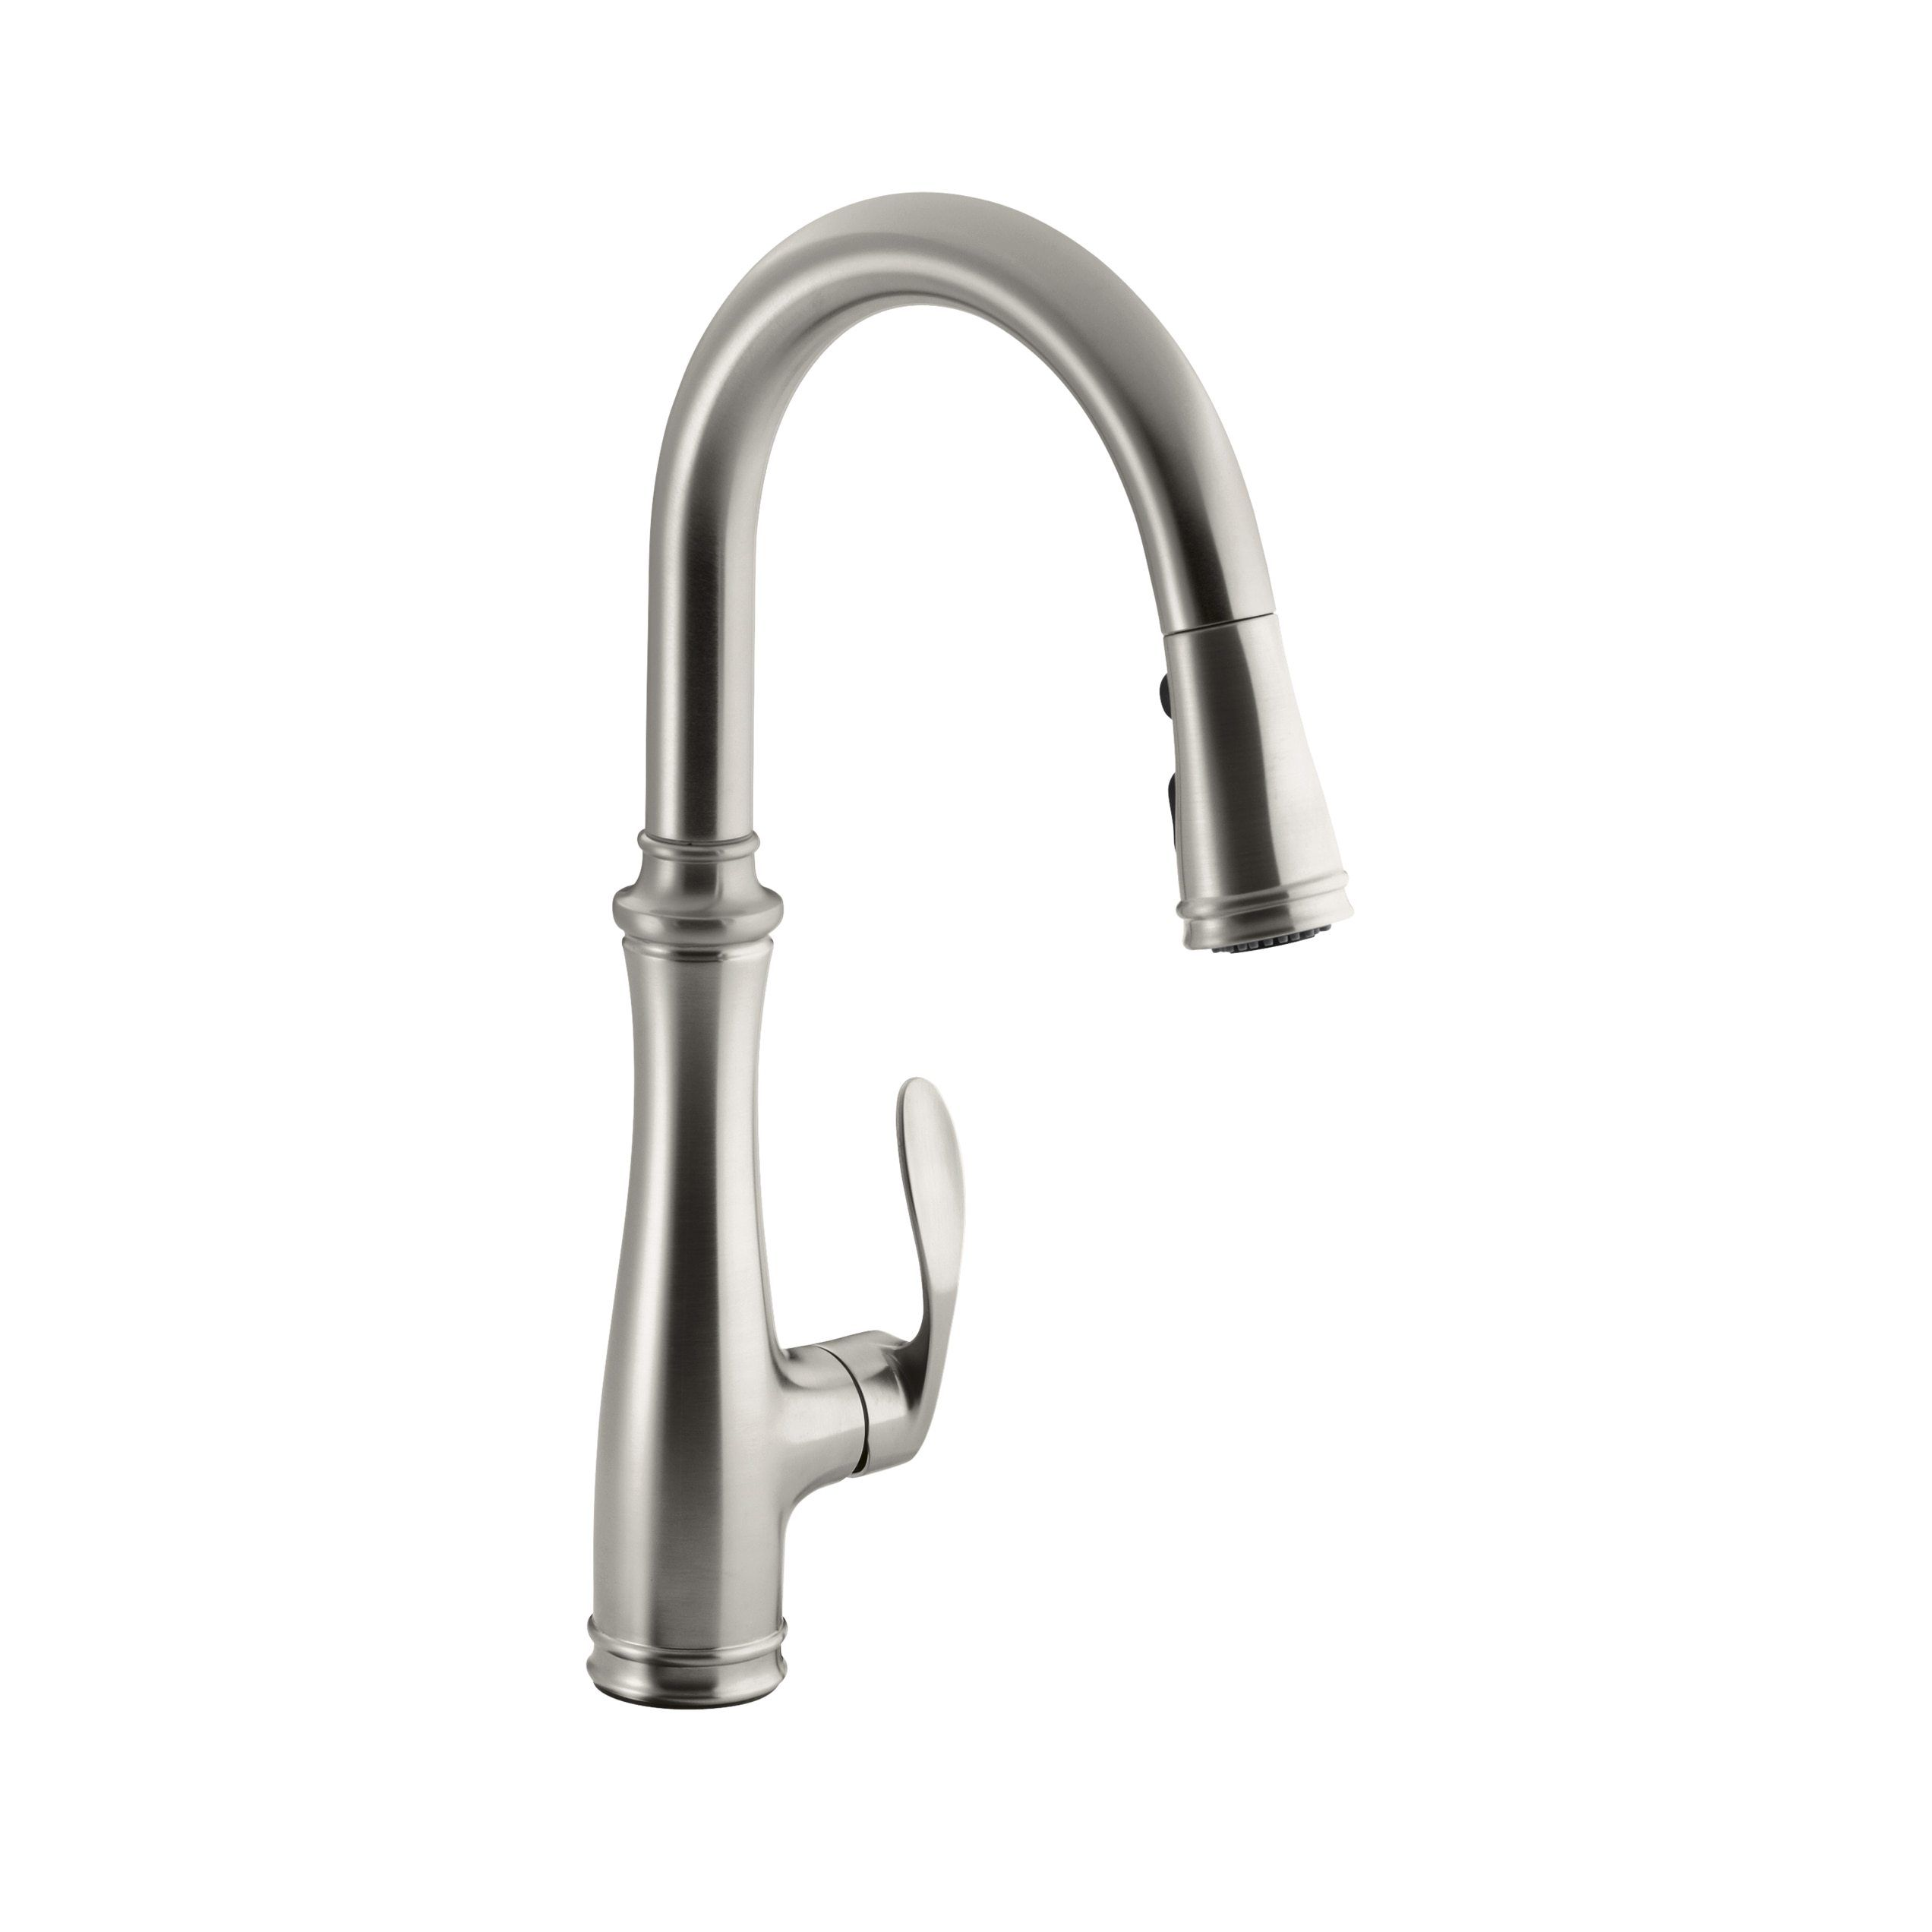 handle kitchen faucet repair kohler kitchen faucet parts fontaine ...